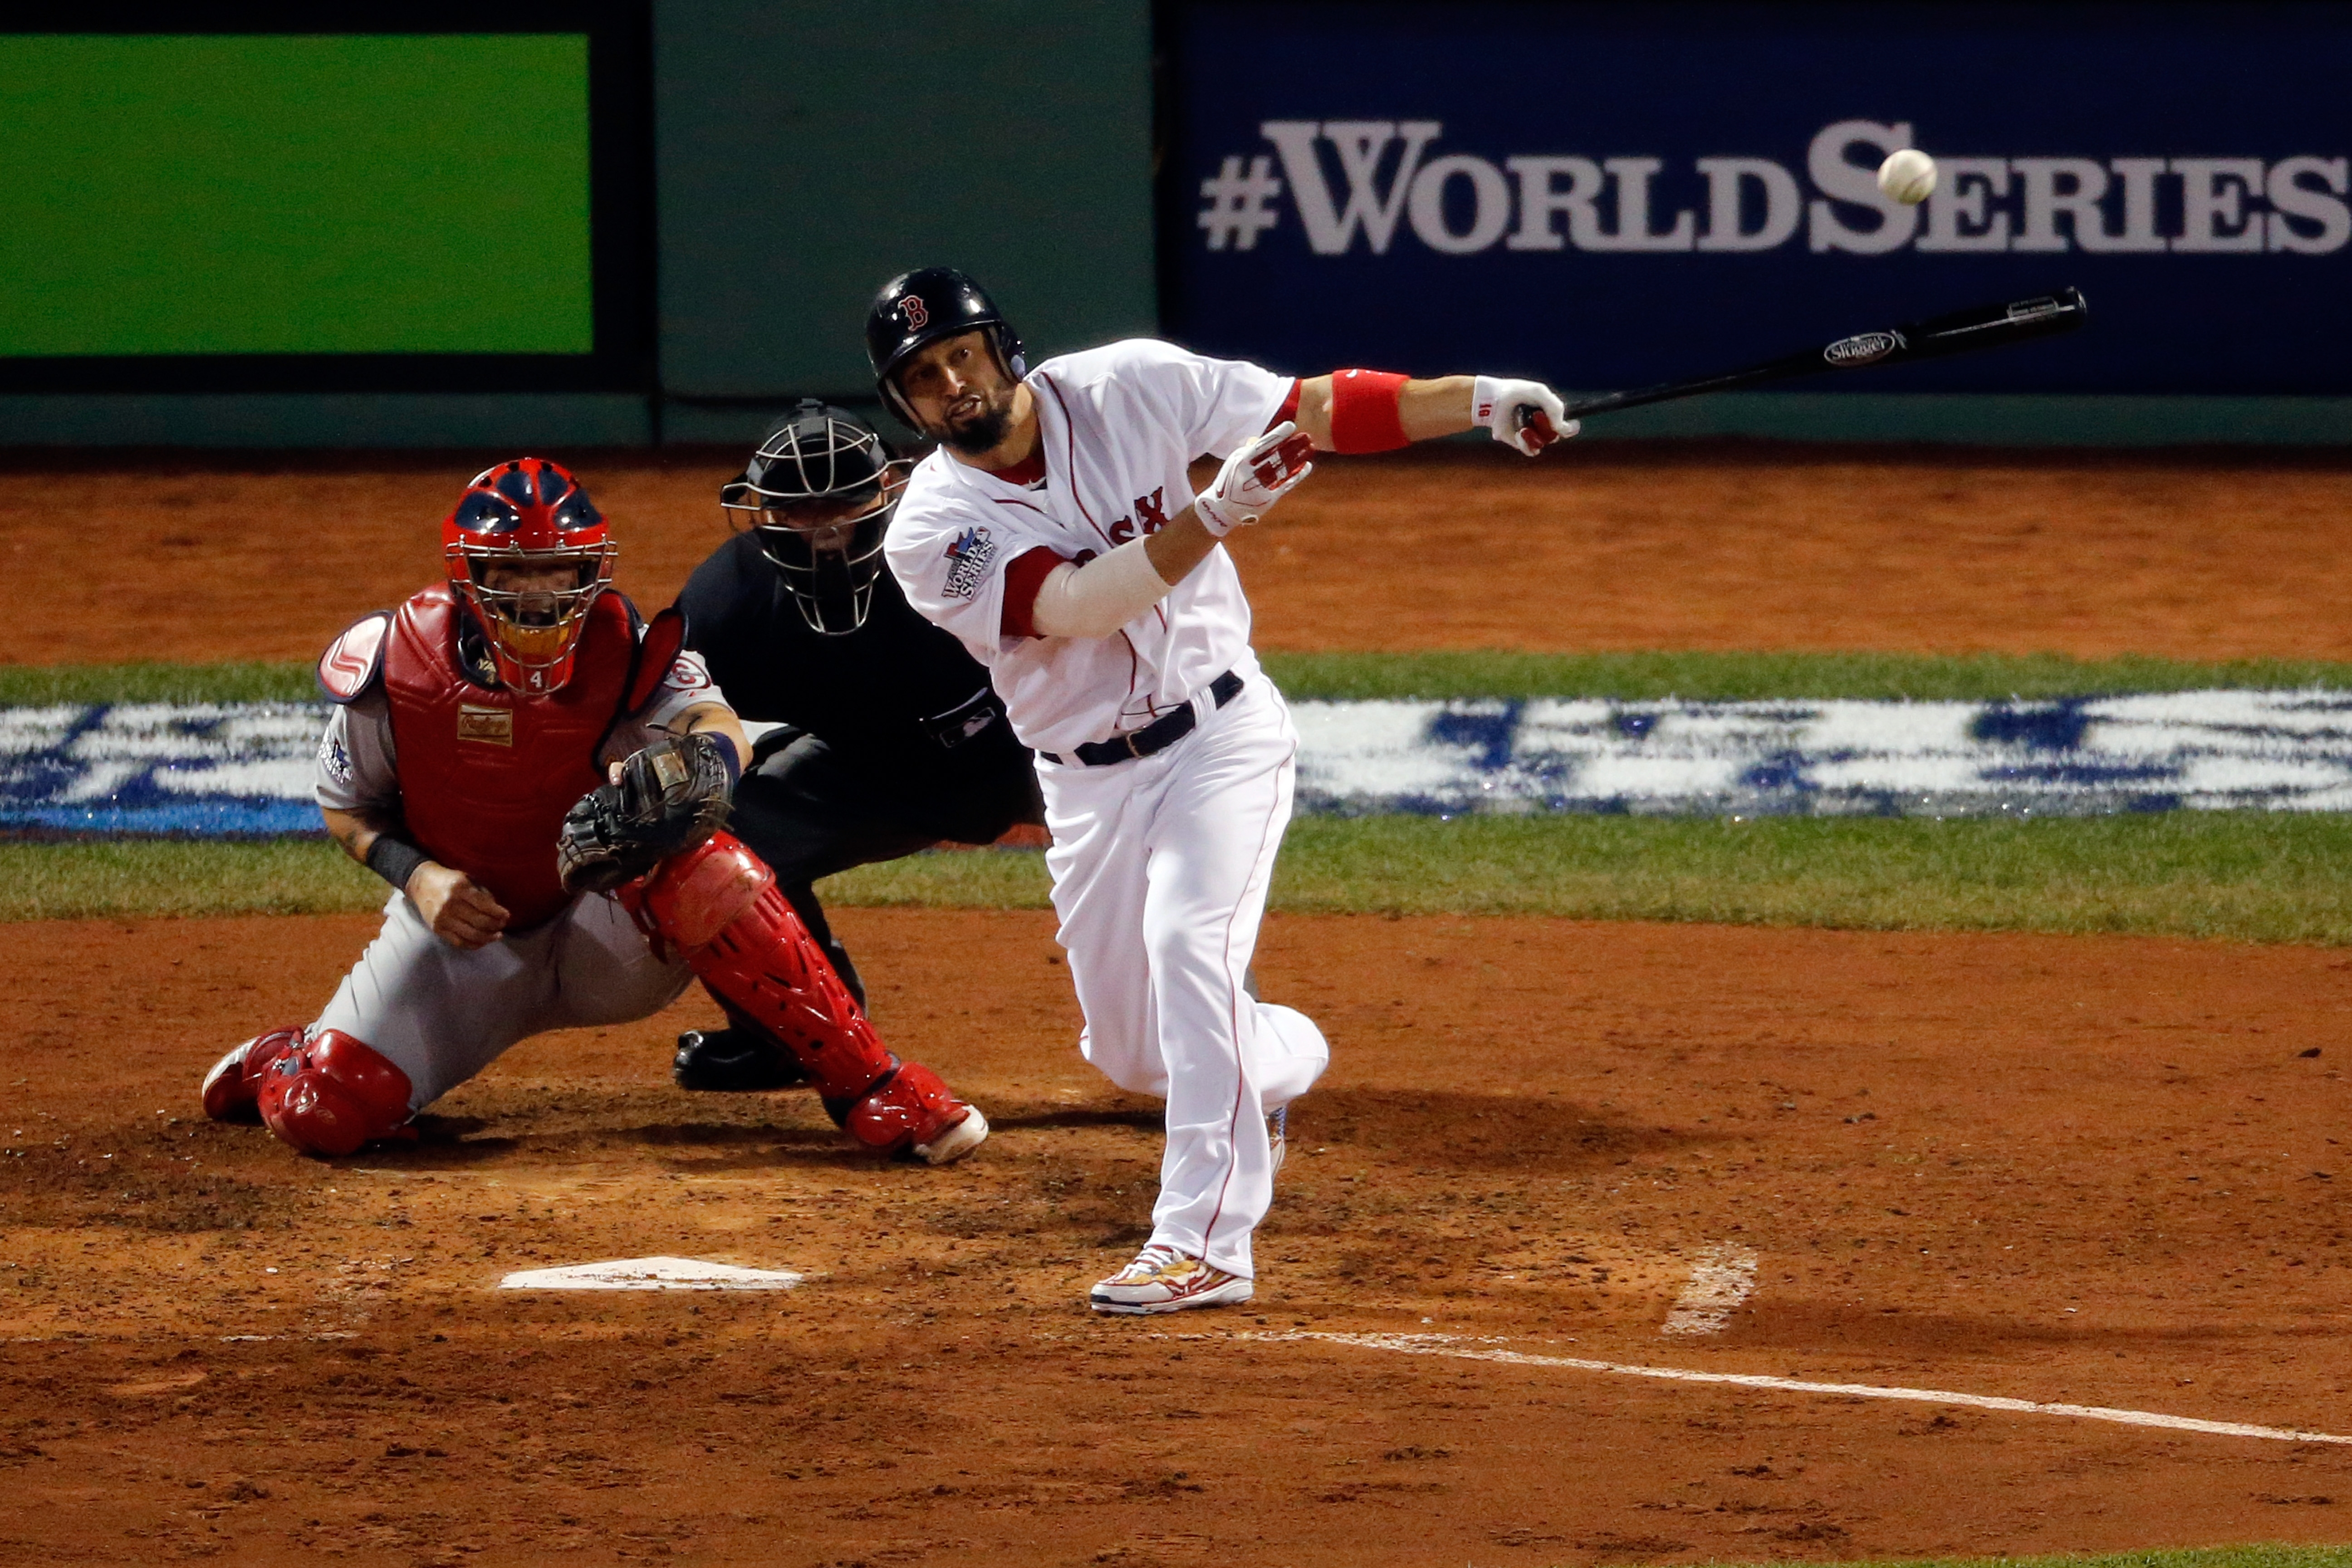 Shane Victorino's bases-clearing double in the third inning gave the Red Sox the lead for good in the deciding Game Six of the World Series on Wednesday night.